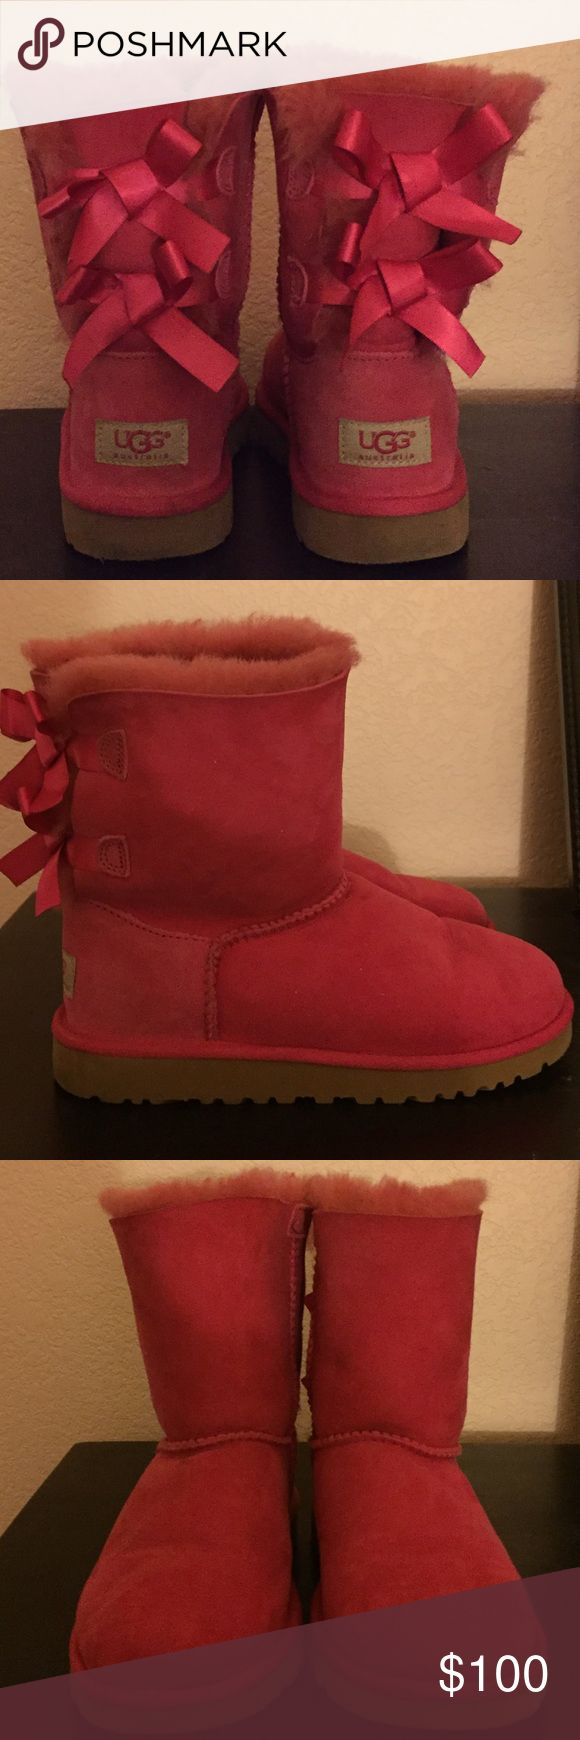 "Kids UGG boots Hot Pink ""Bailey Bow"" Kids size 3 UGG boots. Look new maybe worn 2-3 times. ugg Shoes Boots"